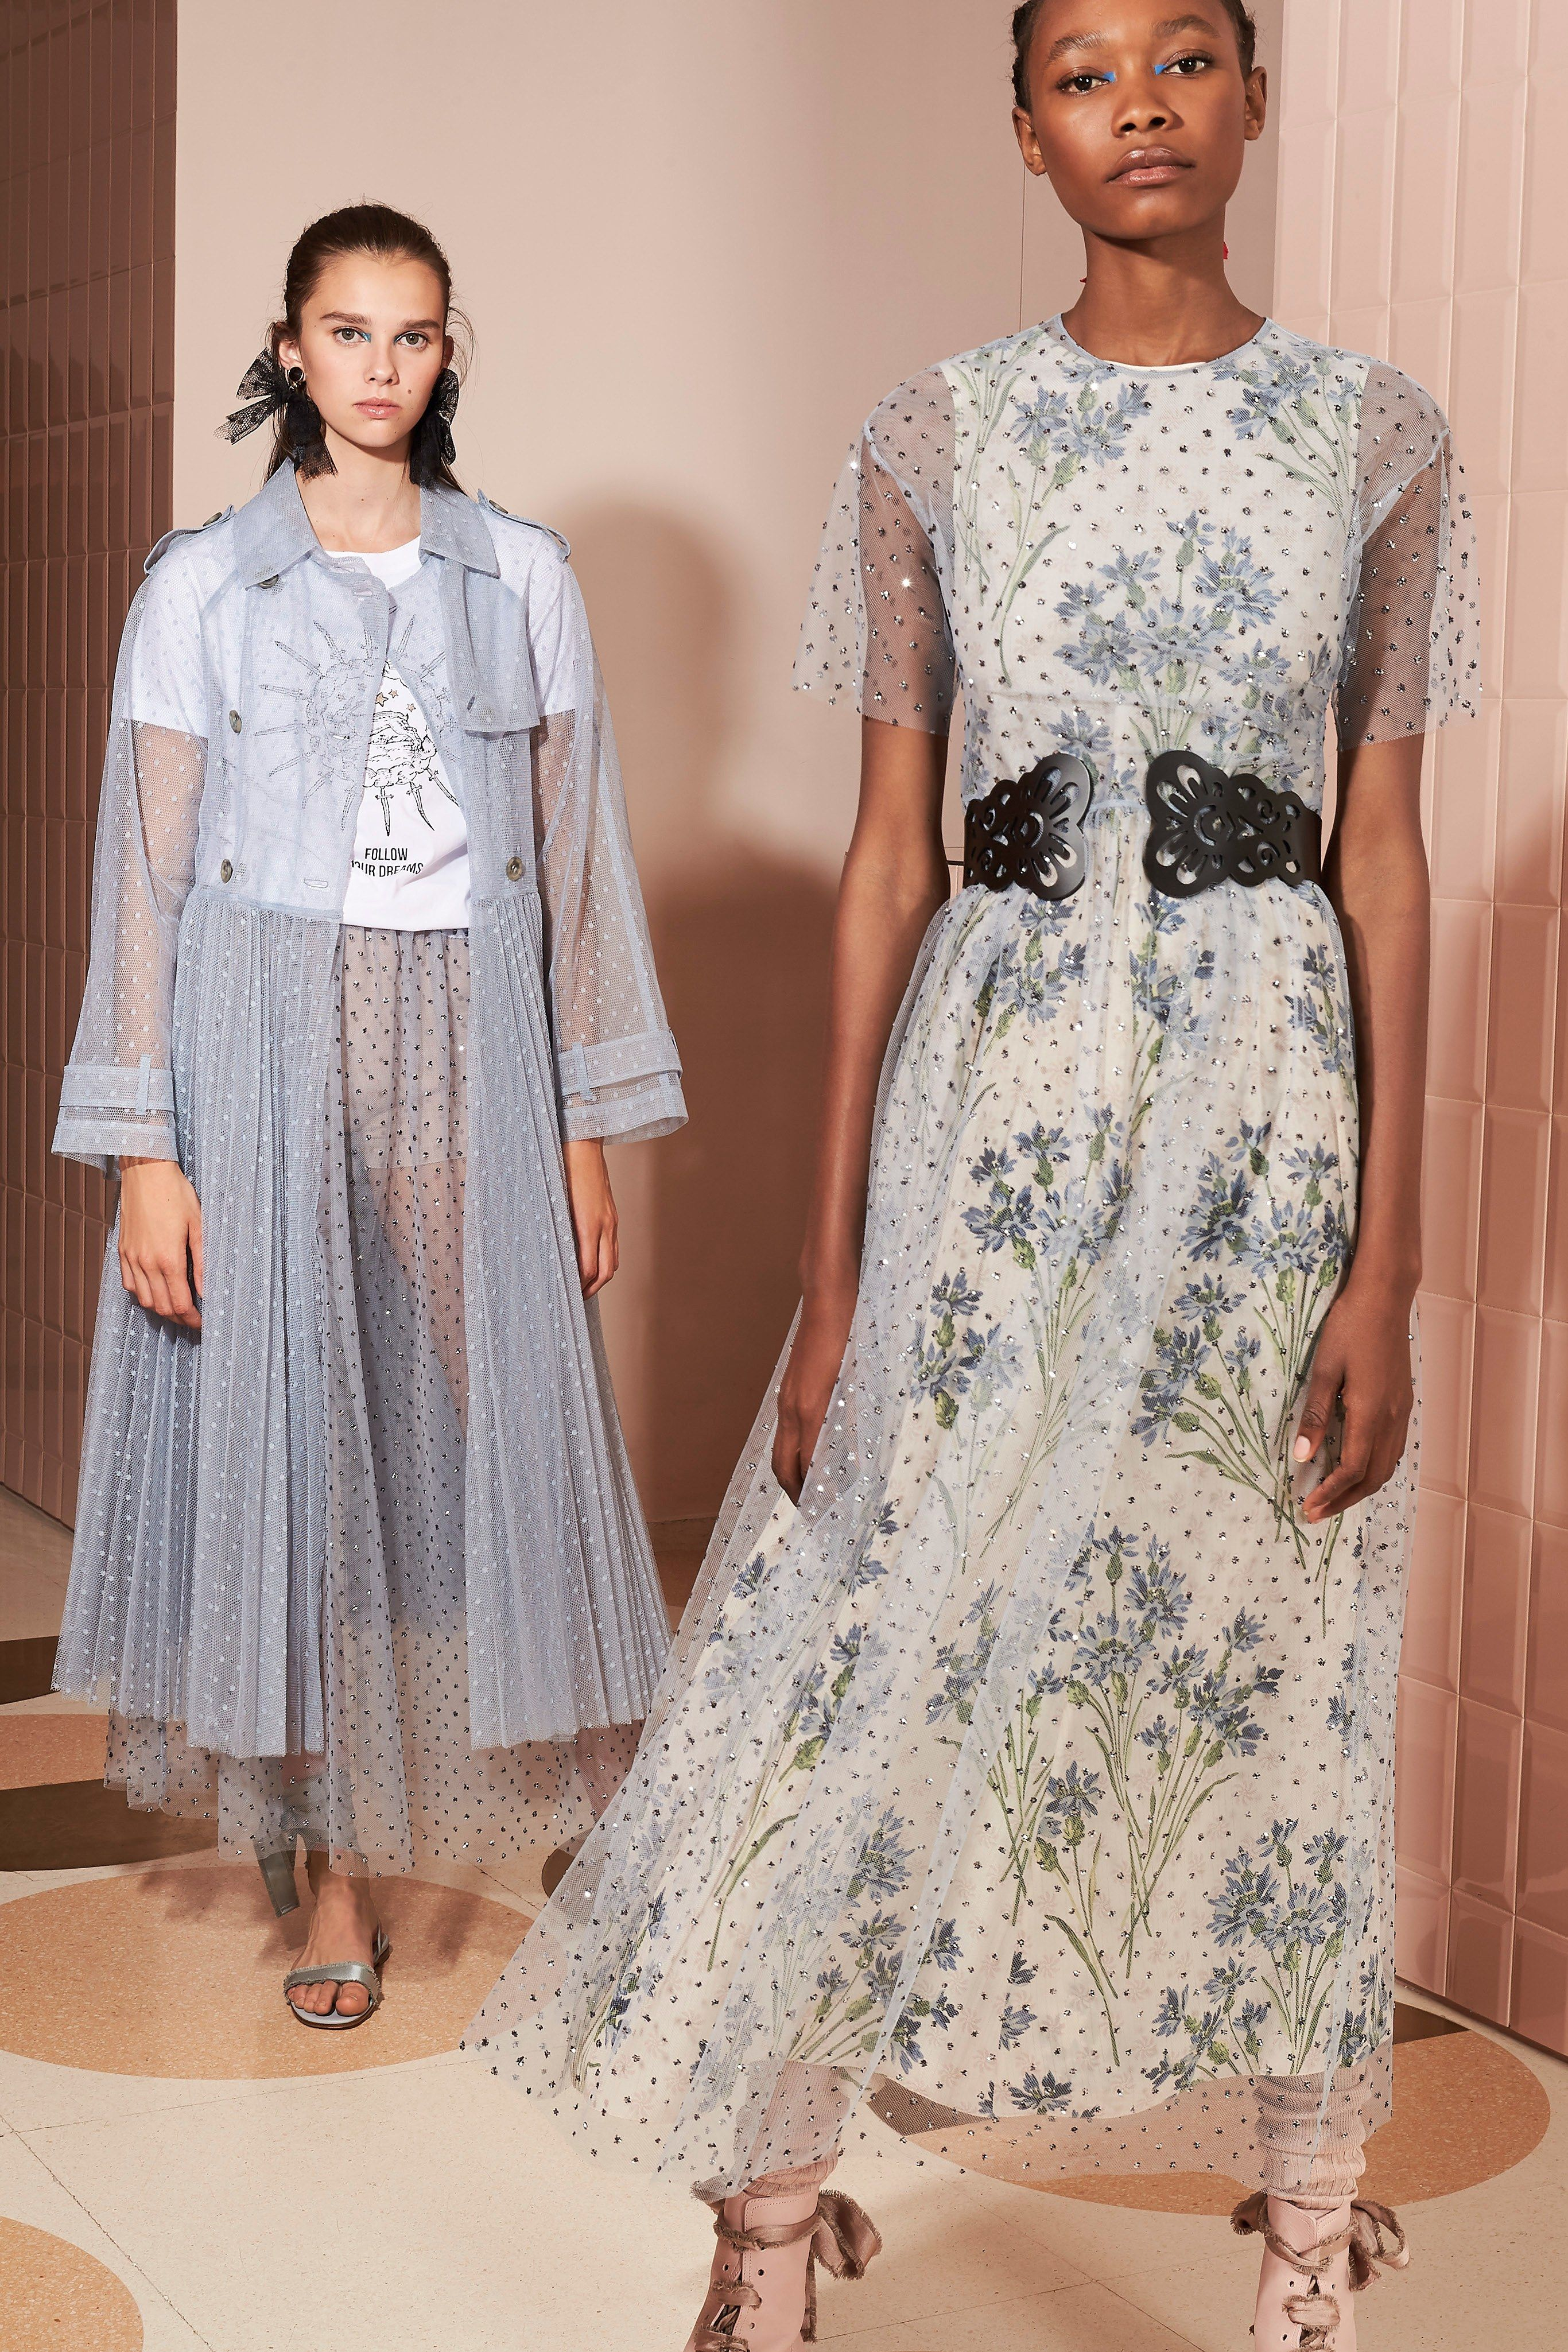 Red Valentino Resort 2020 Fashion Show Com Imagens Looks